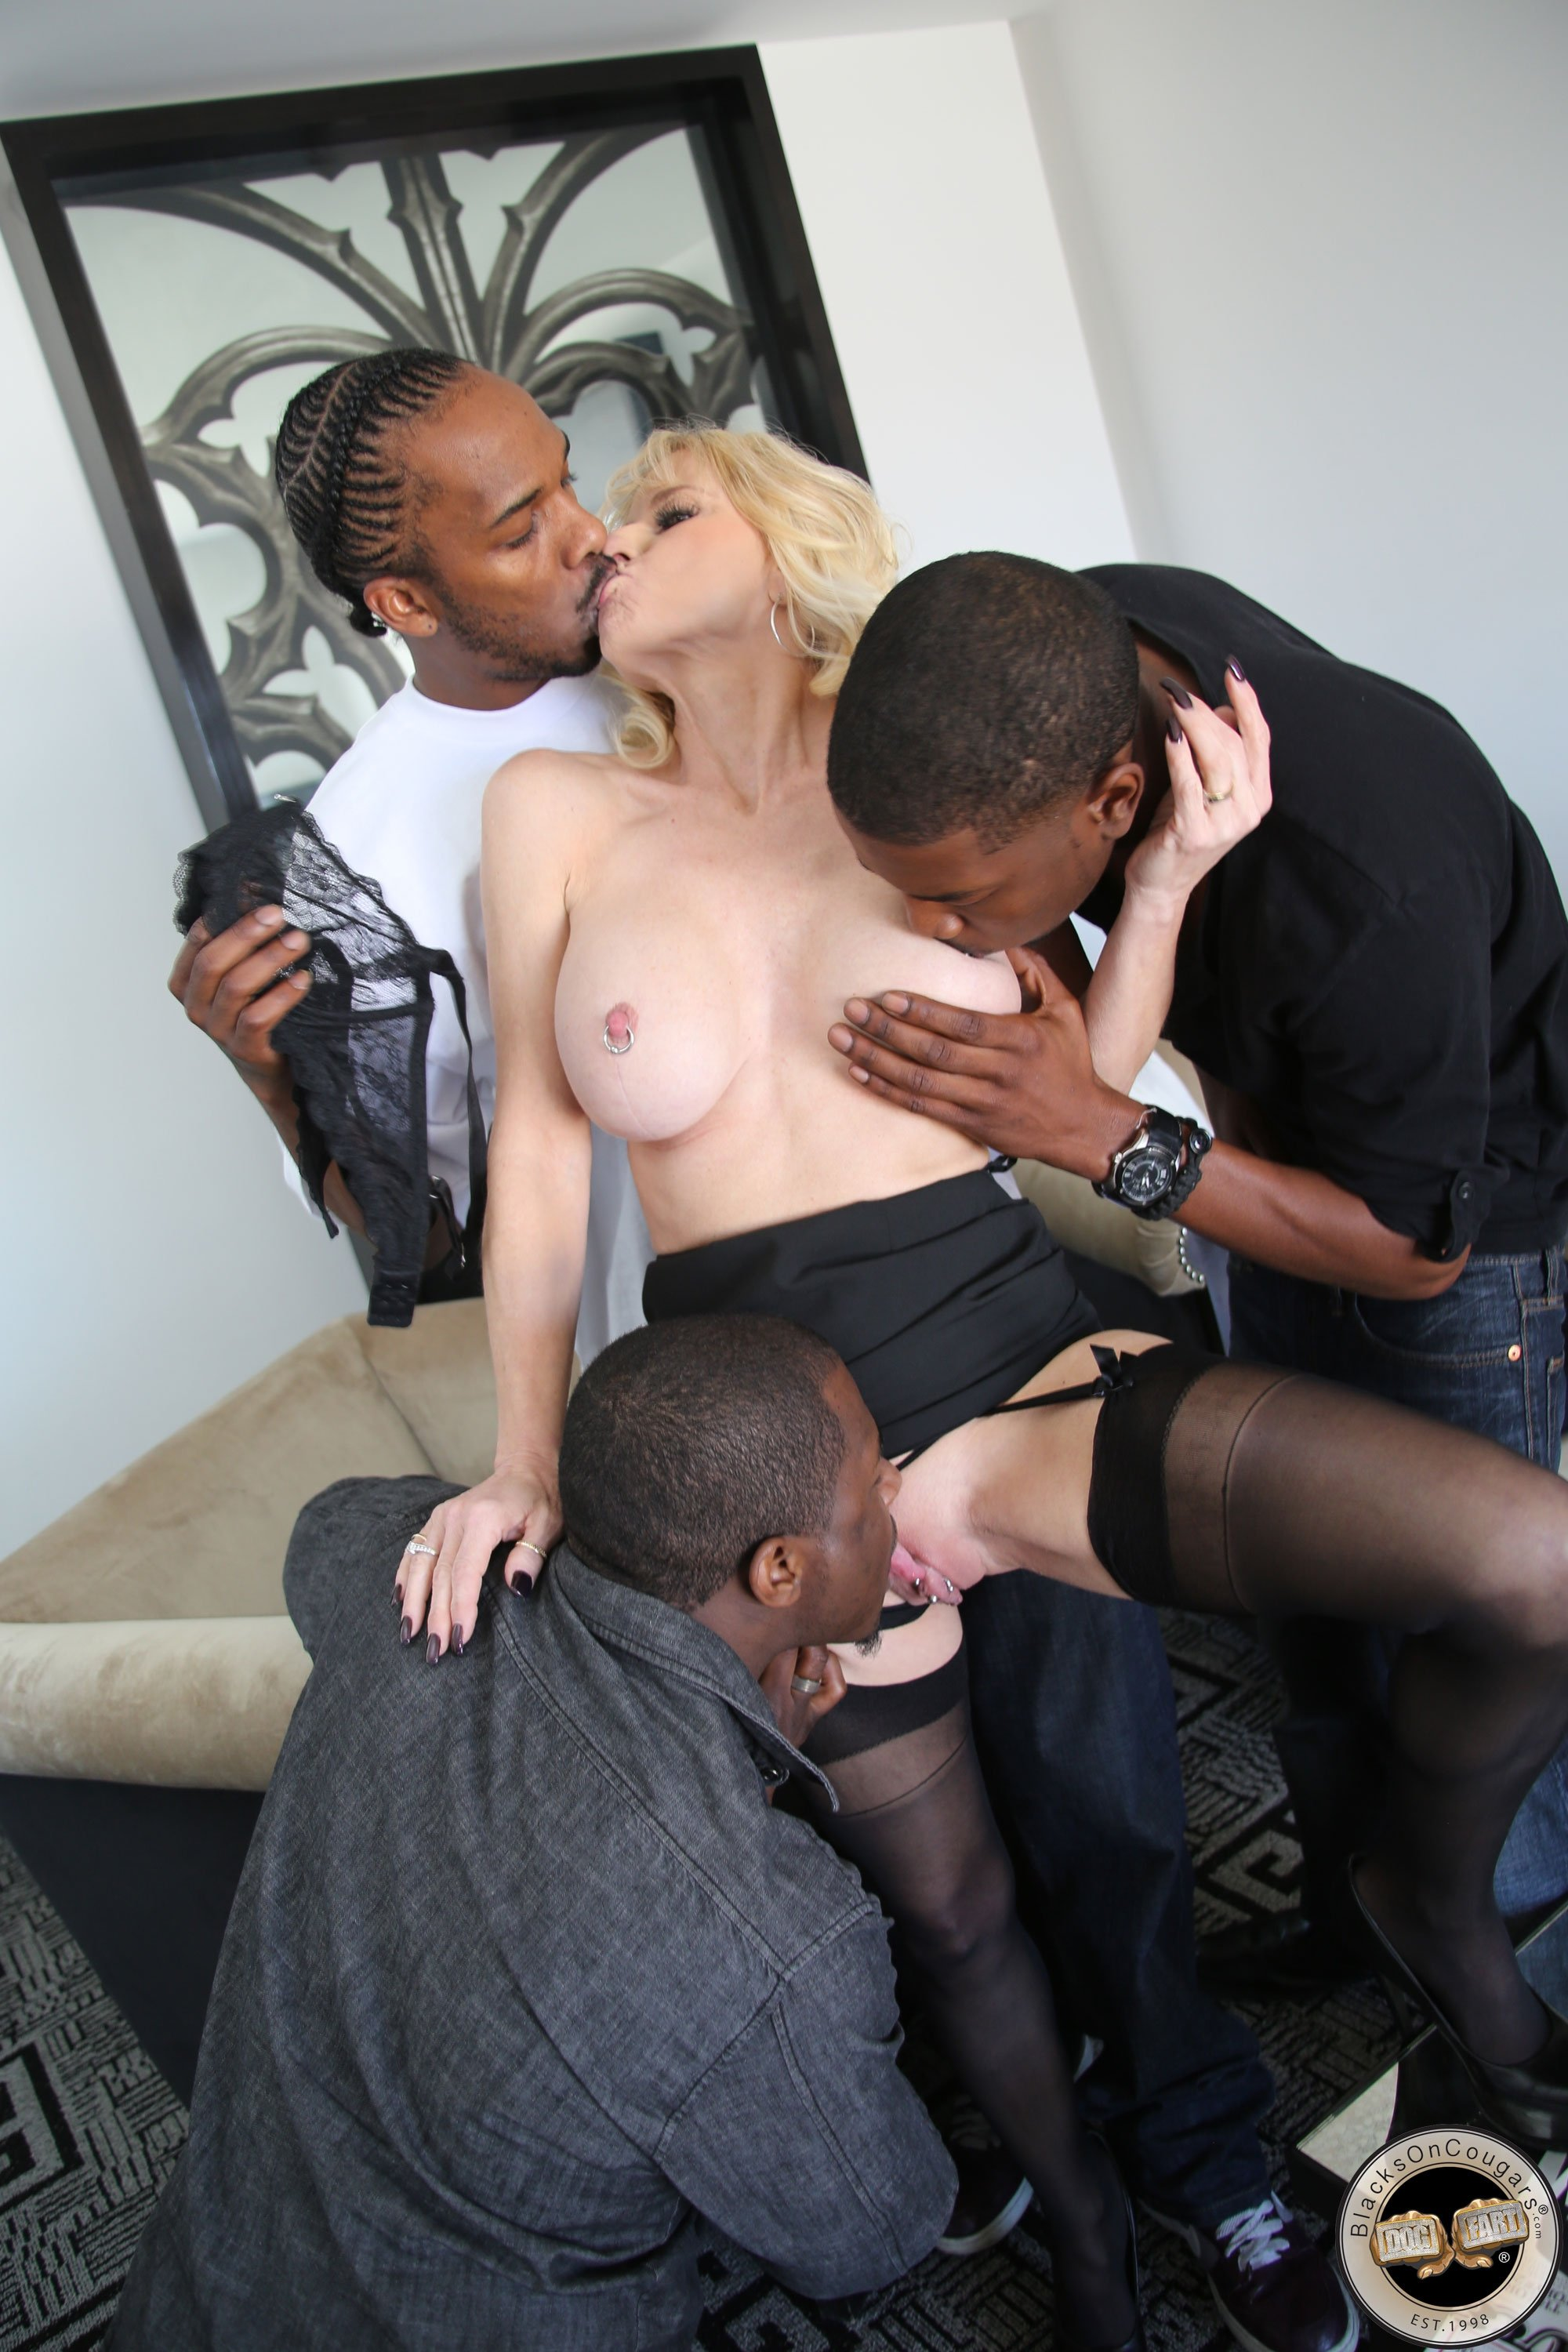 Mature wife hotel sex Lisa ann massages Ozmun nude photos + police chief wife